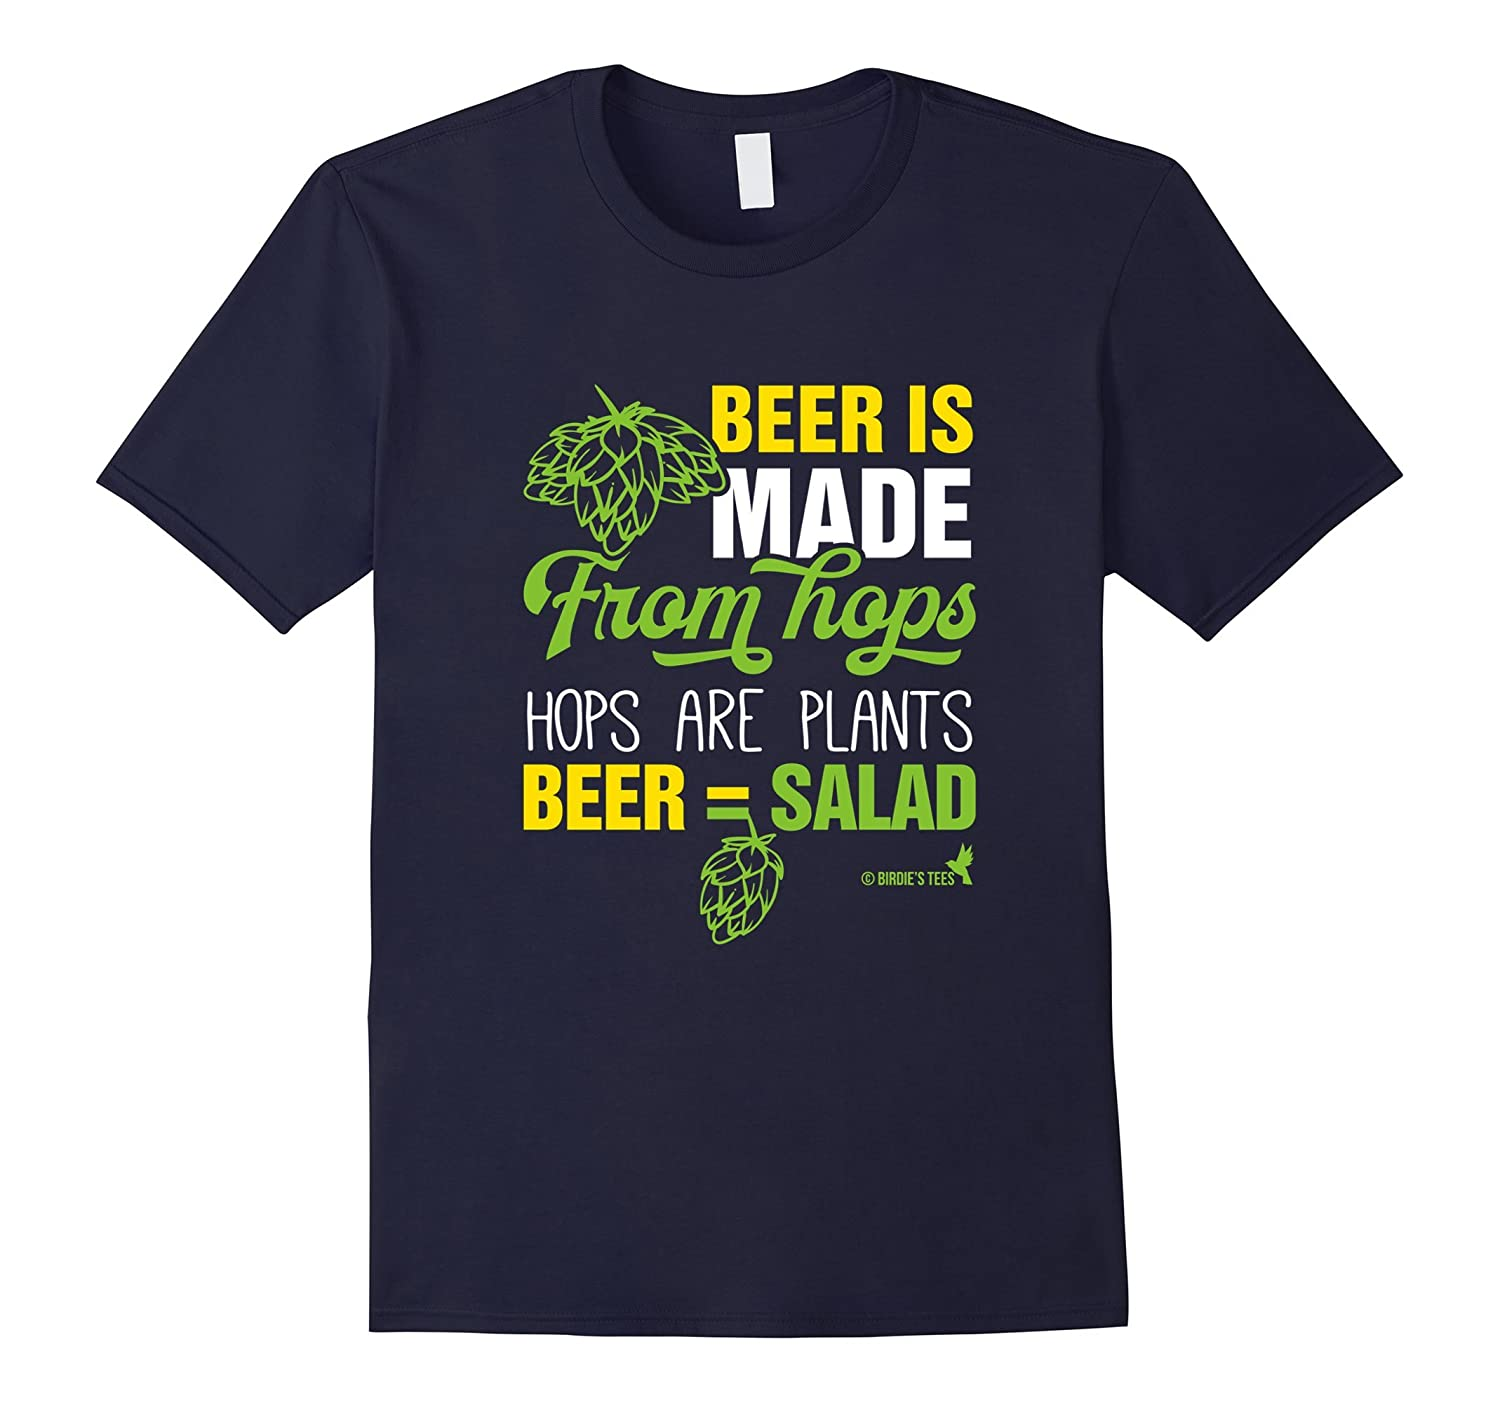 Beer is Salad Humorous Funny T-Shirt for Beer Lovers-TD